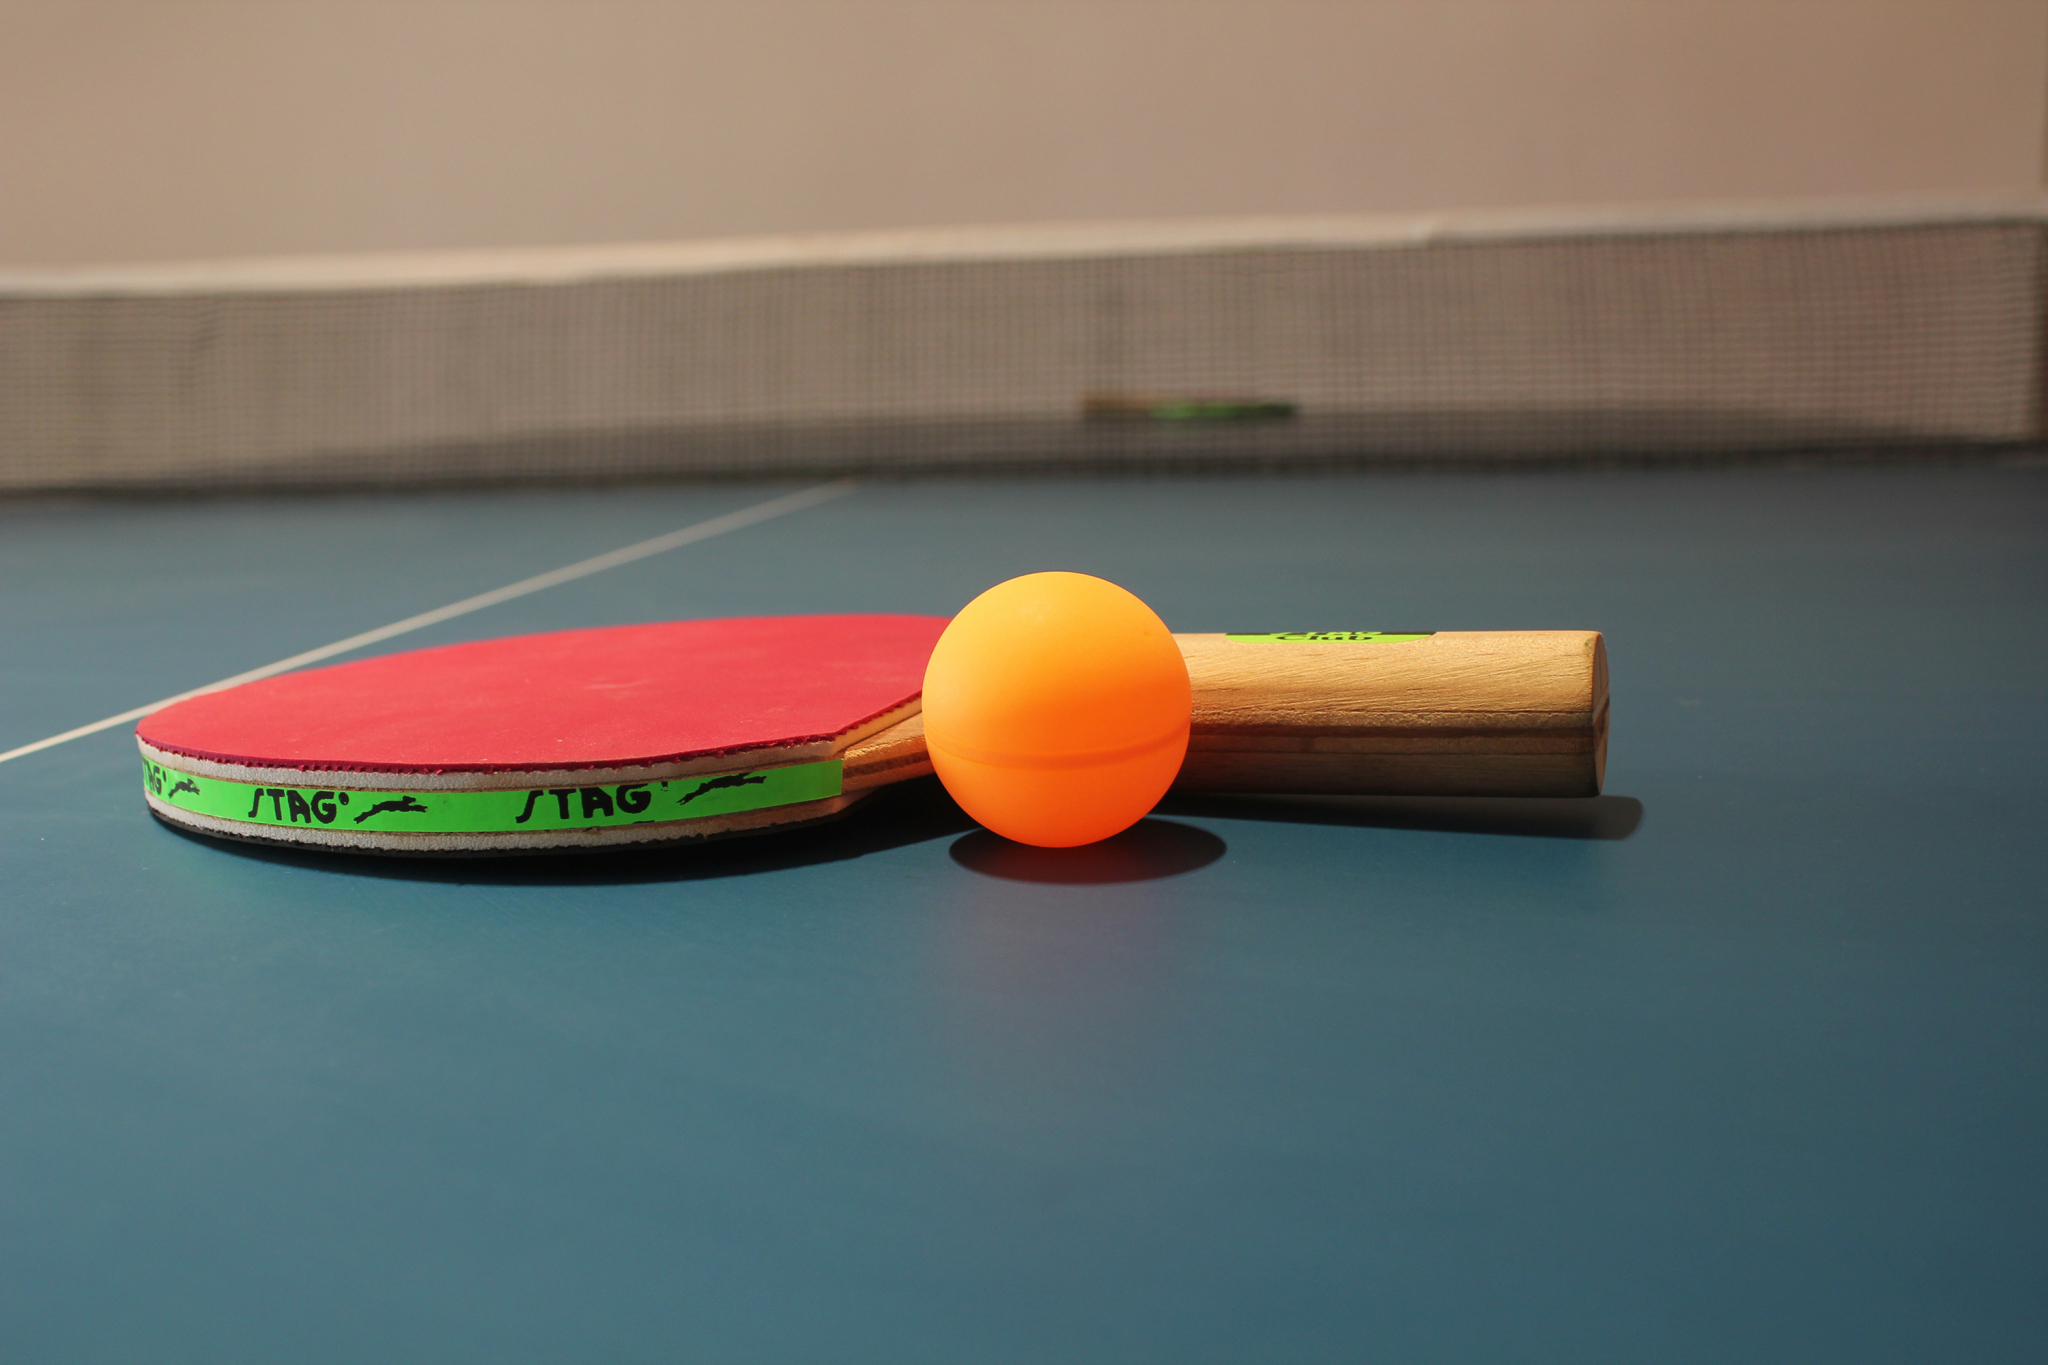 ping pong hd wallpapers free download. Black Bedroom Furniture Sets. Home Design Ideas